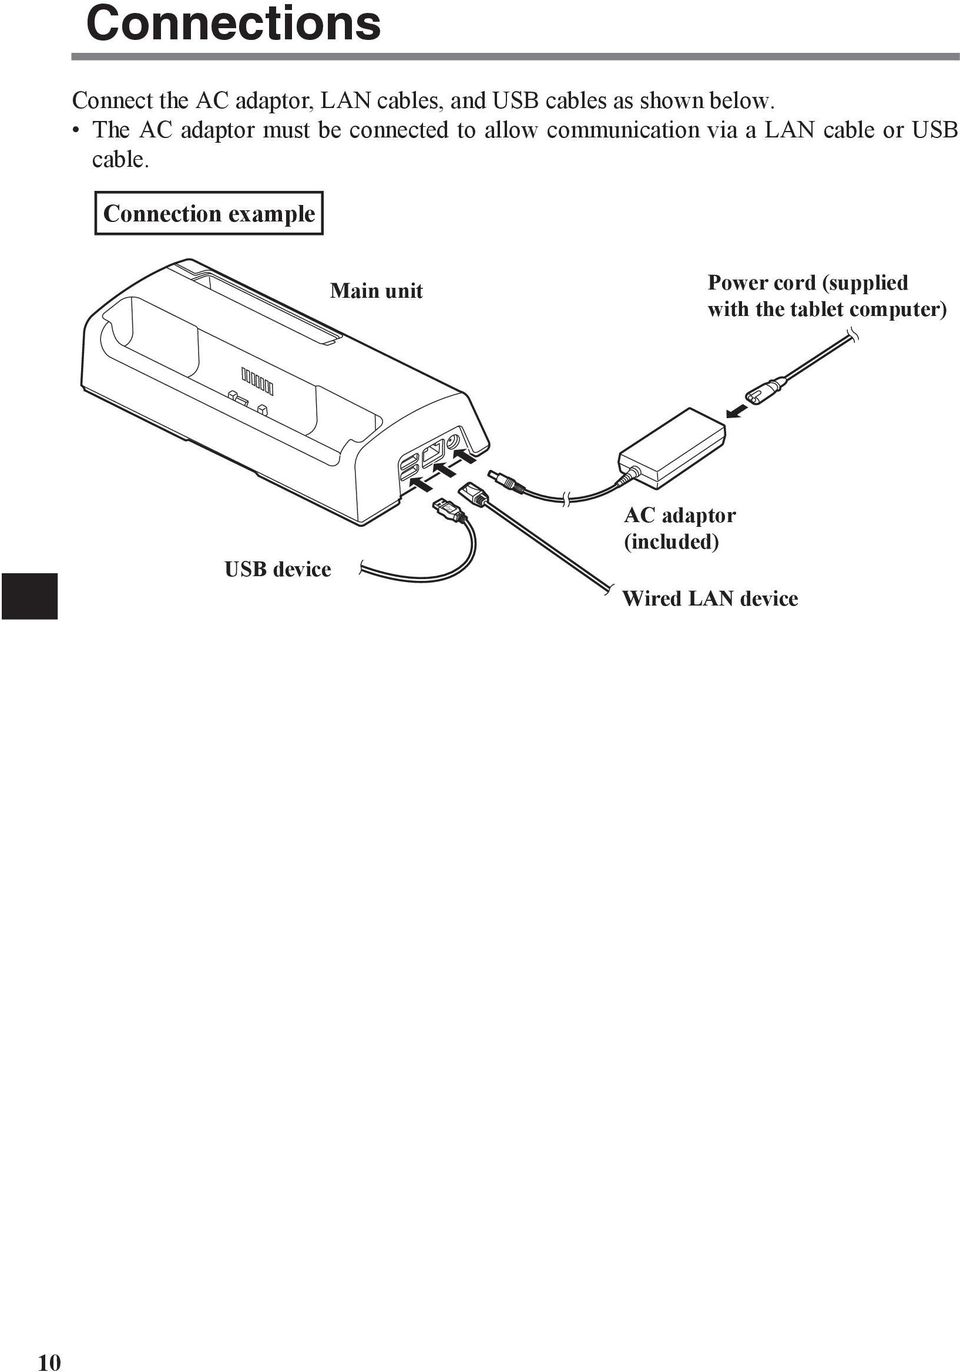 The AC adaptor must be connected to allow communication via a LAN cable